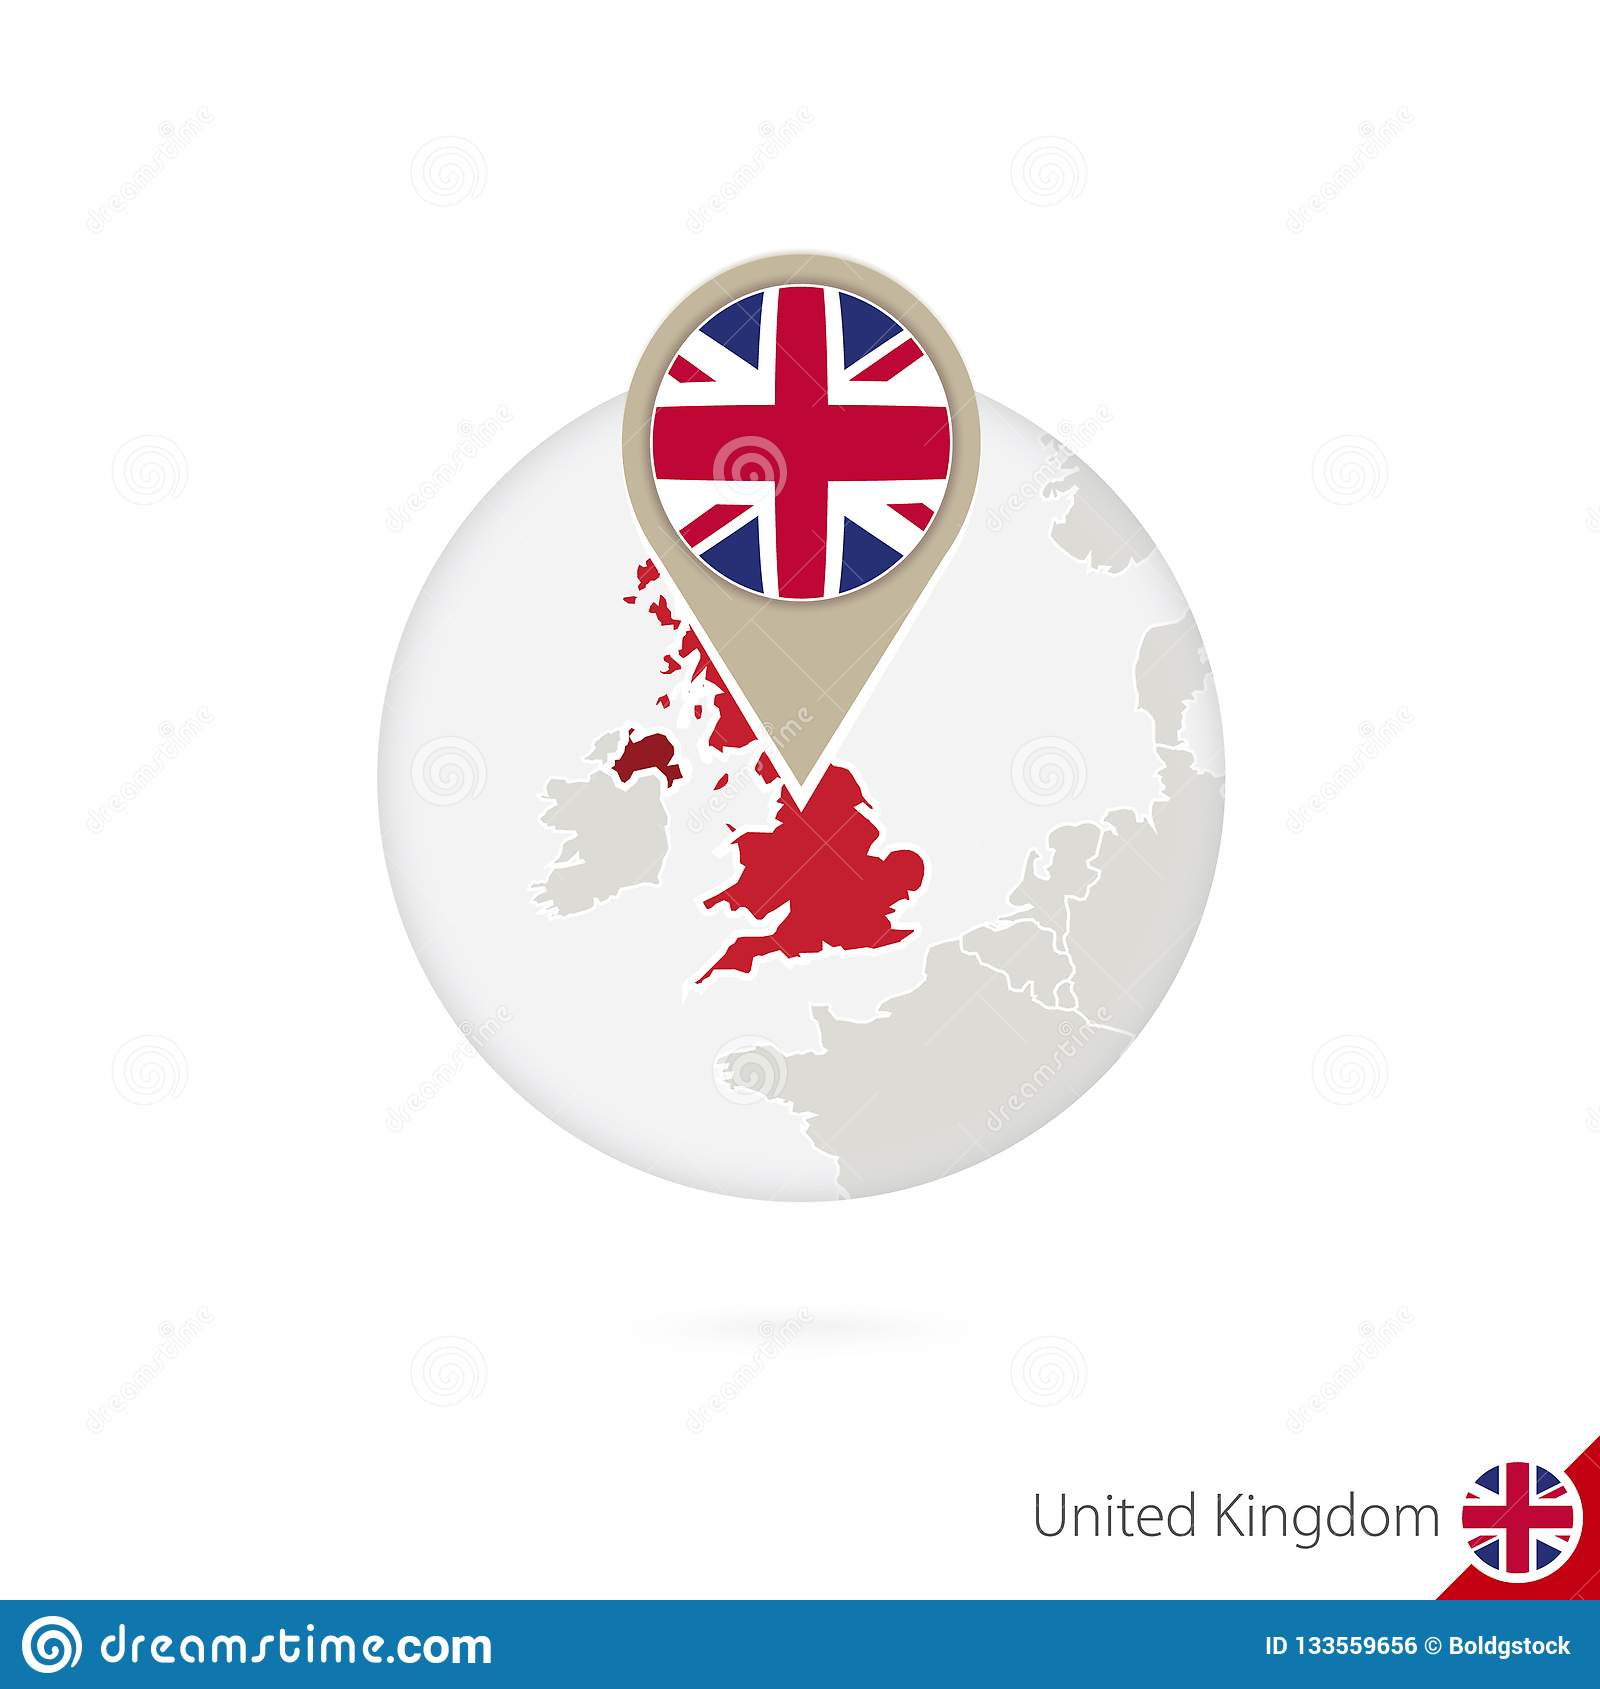 United Kingdom Map And Flag In Circle  Map Of United Kingdom